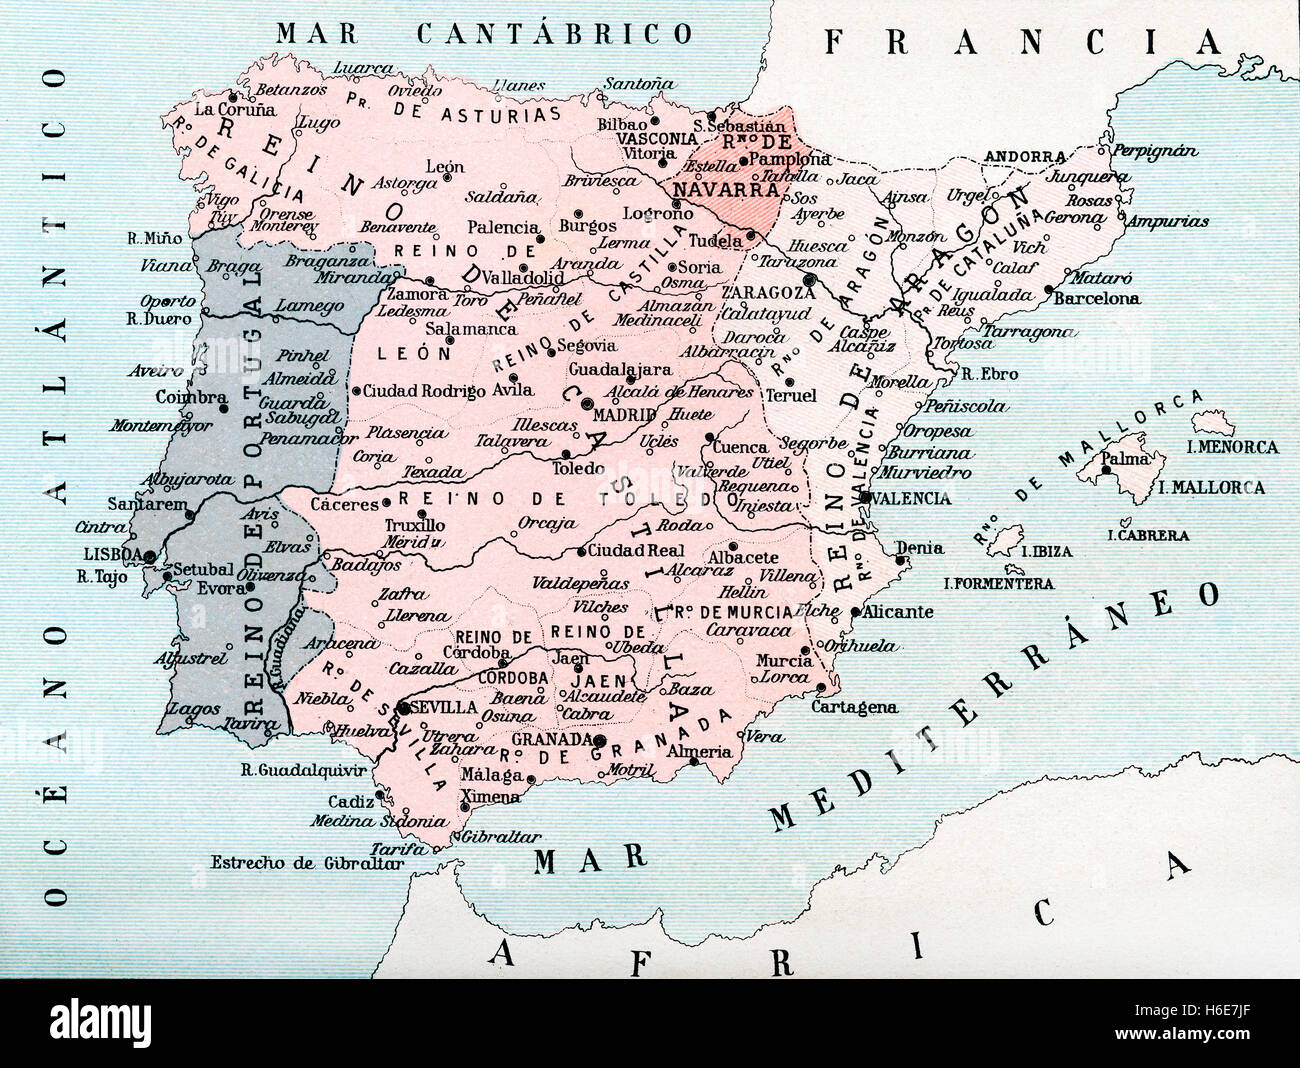 Map of Spain up until the union between Castile and Aragon in 1469.